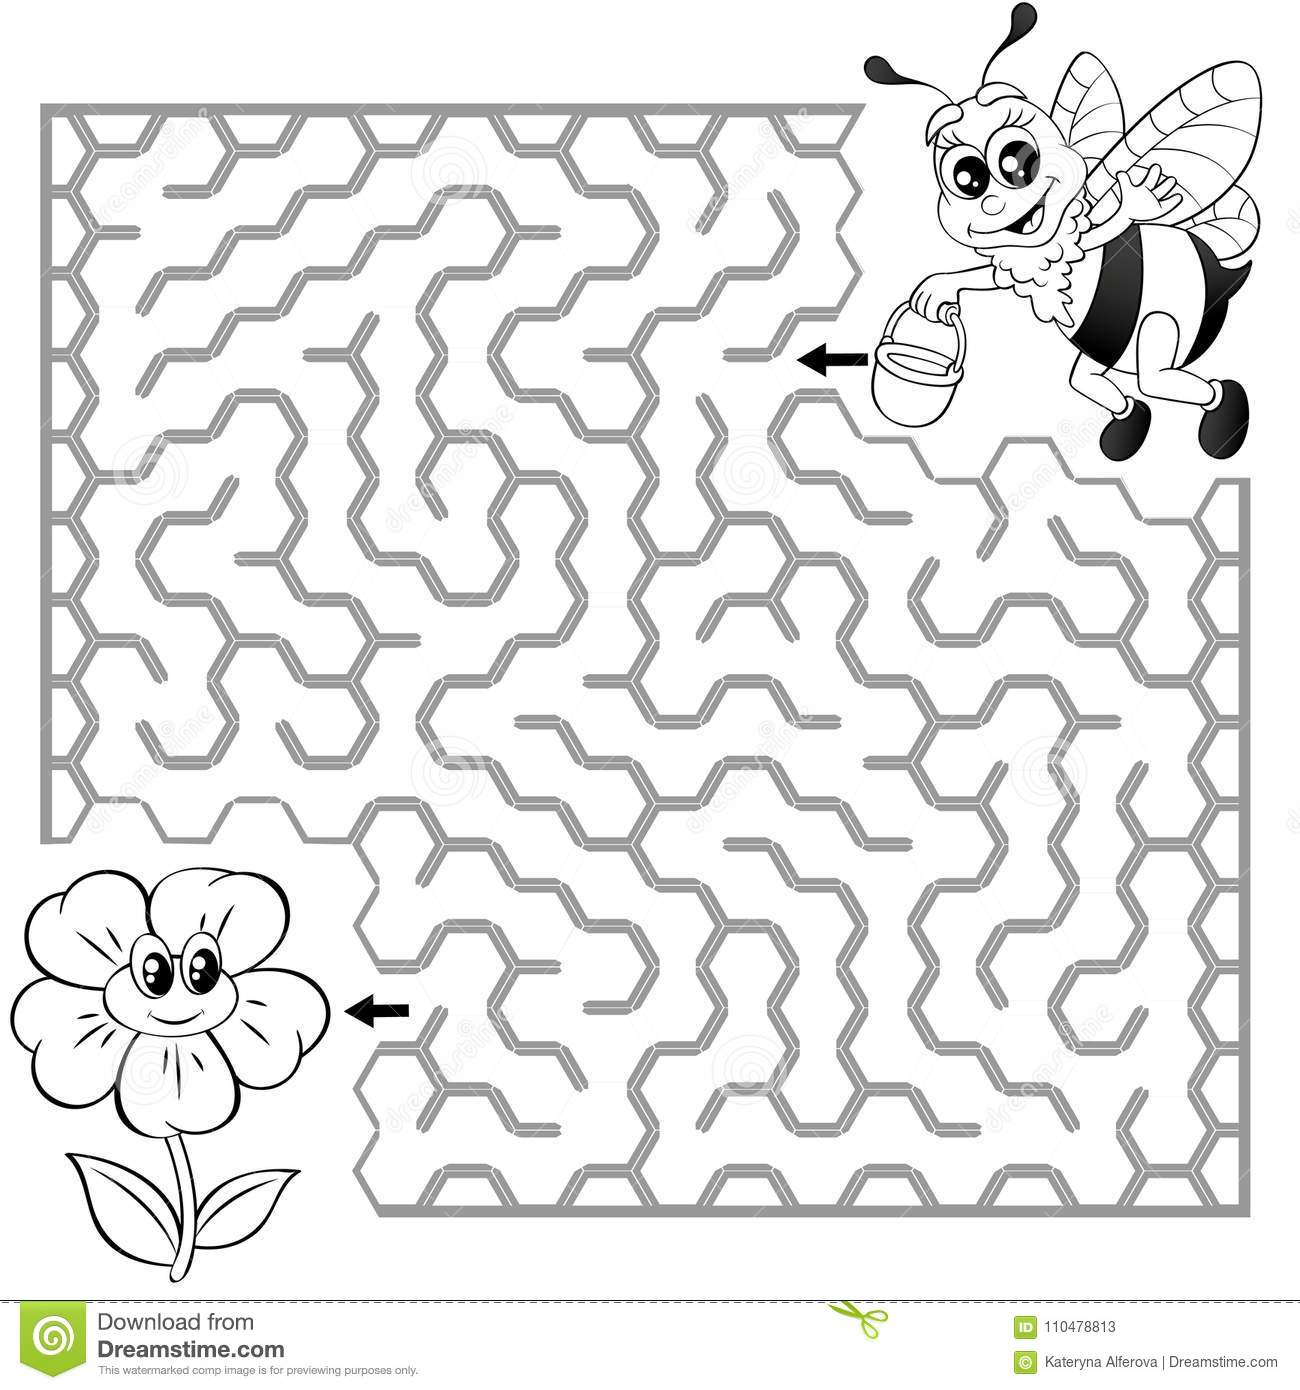 Help Bee Find Path To Flower Labyrinth Maze Game For Kids Black And White Vector Illustration Coloring Book Royalty Free